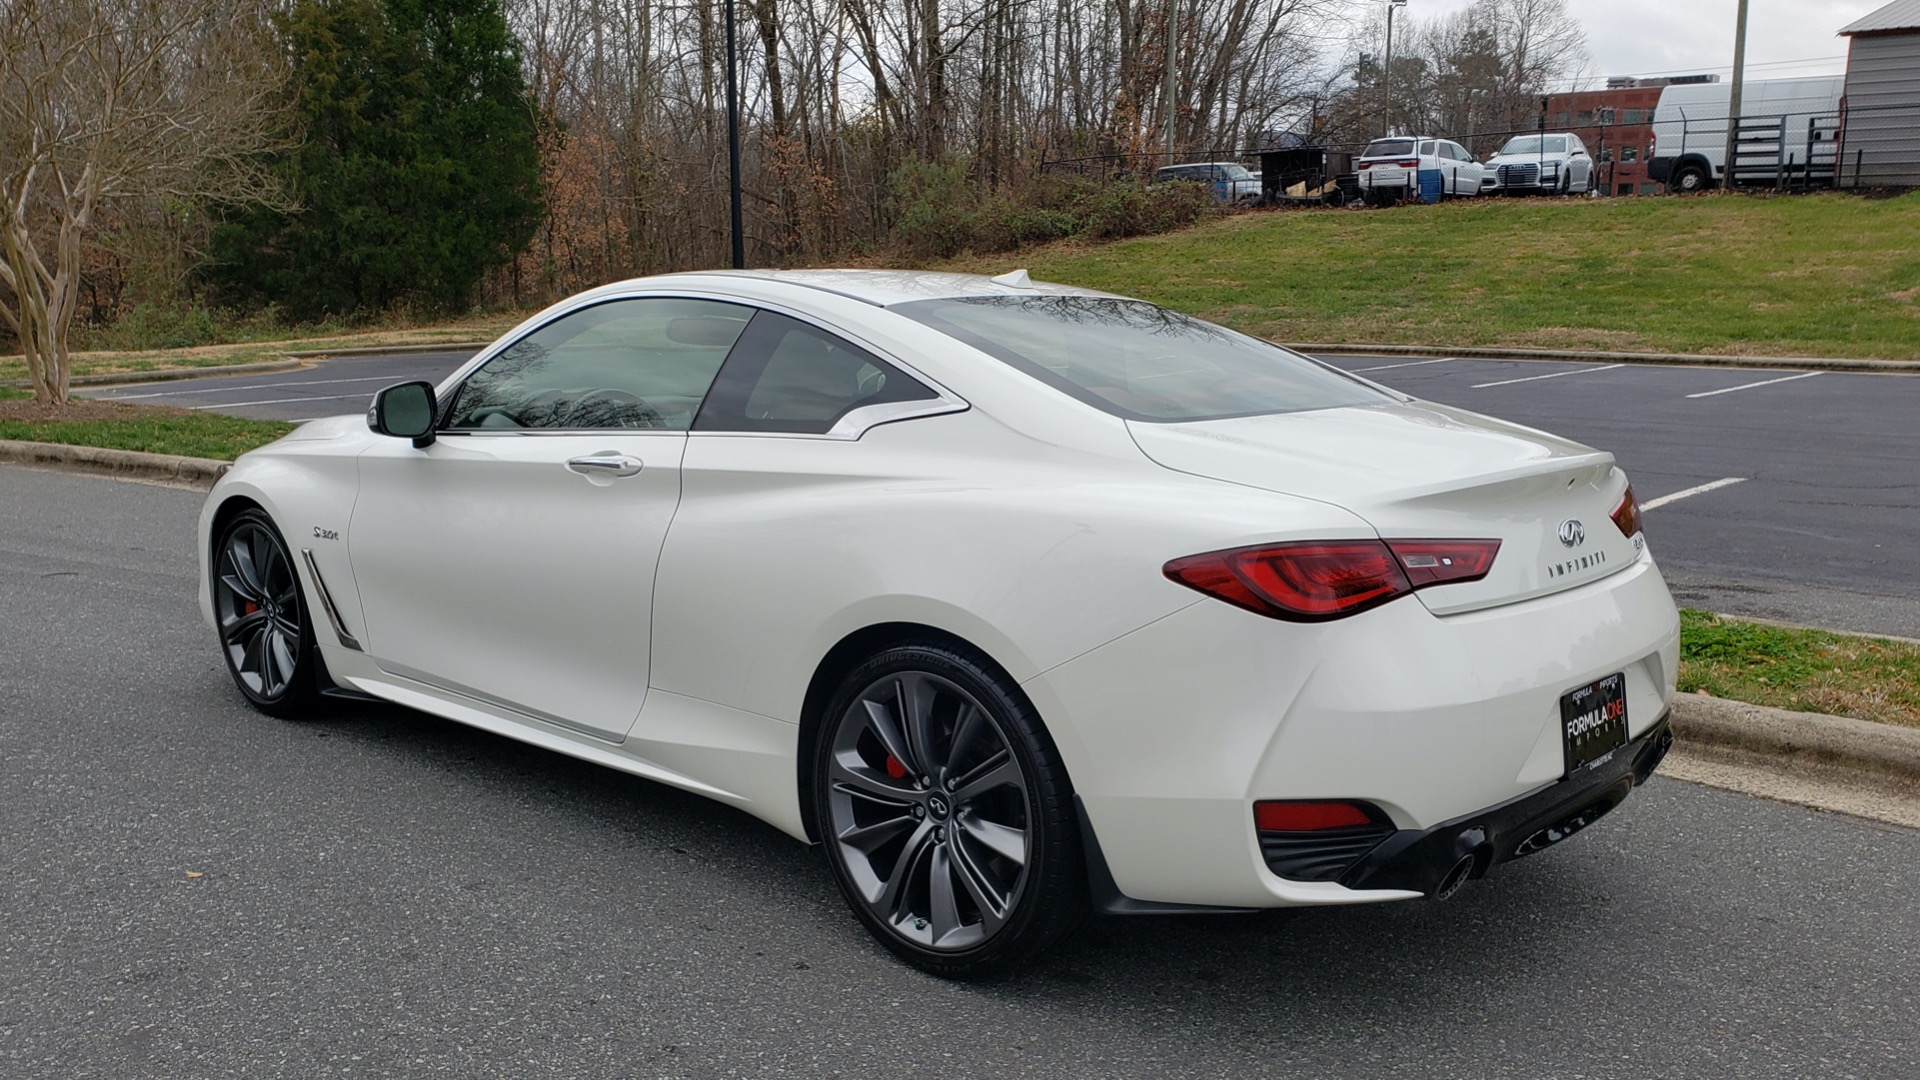 Used 2018 Infiniti Q60 RED SPORT 400 / SENSORY PKG / SUNROOF / NAV / REARVIEW for sale Sold at Formula Imports in Charlotte NC 28227 3